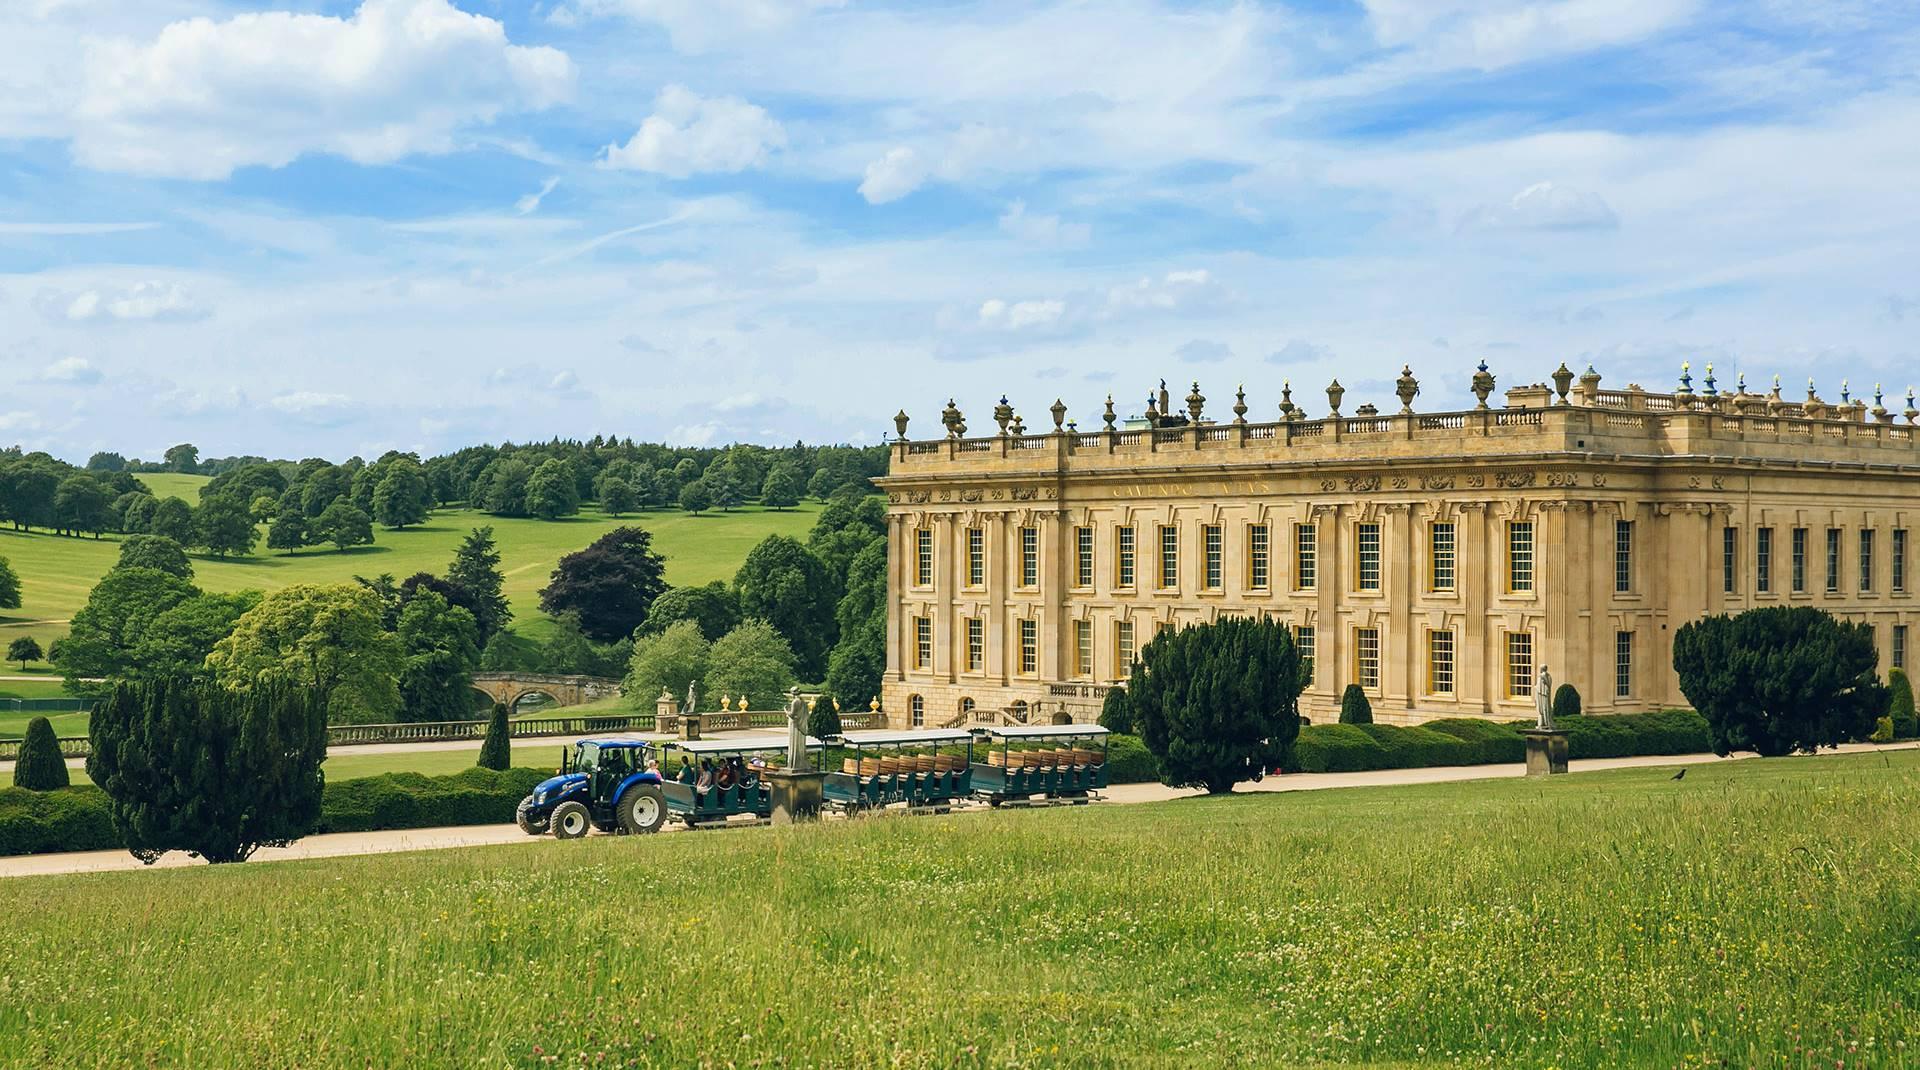 Welcome to Chatsworth House